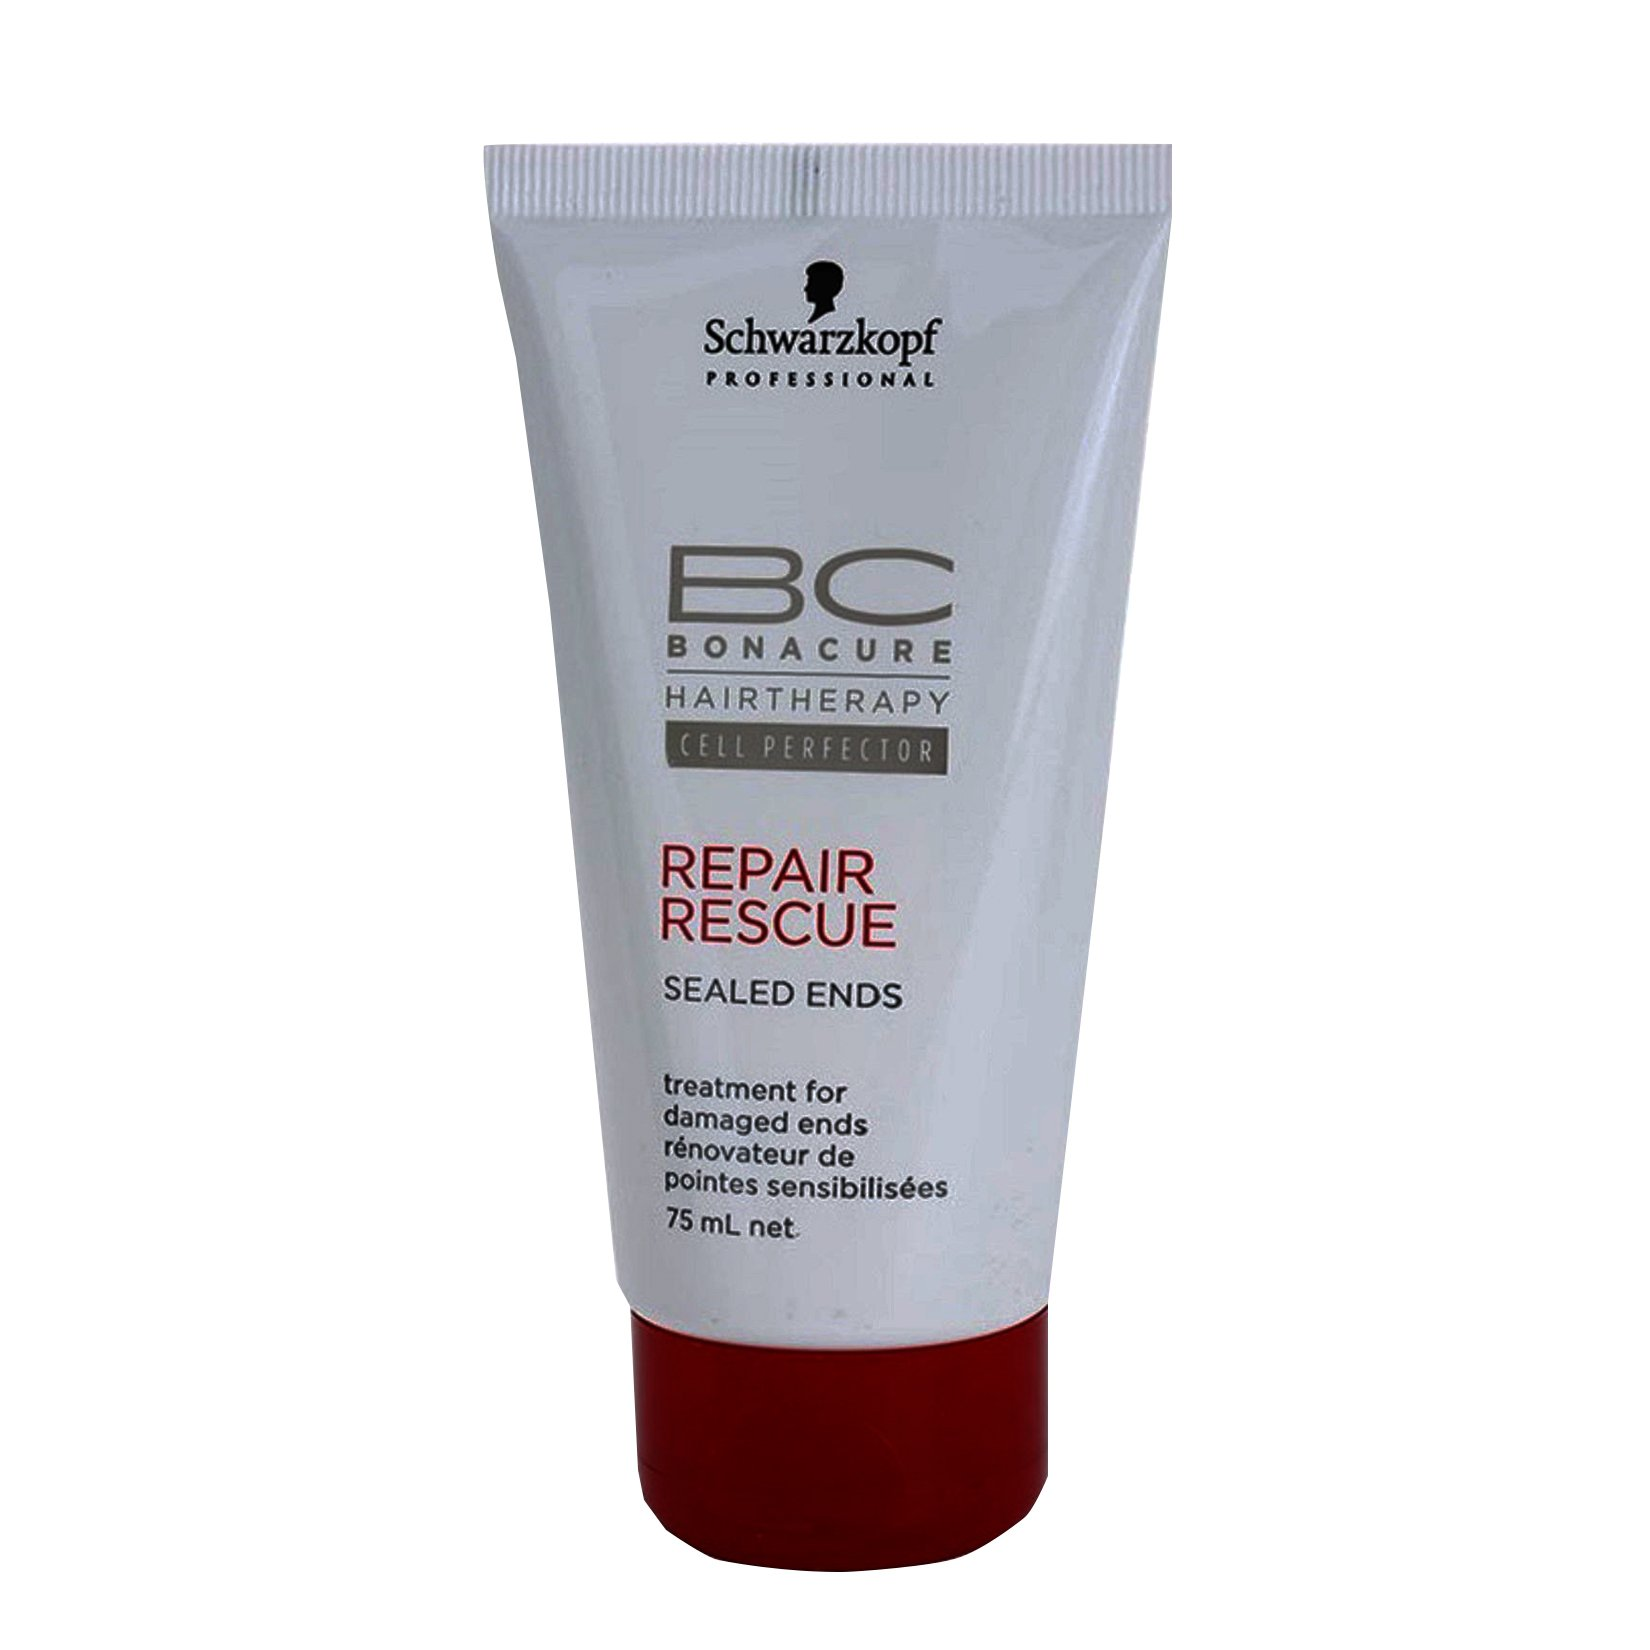 Schwarzkopf Bc Repair Rescue Reversilane Sealed Ends 150ml by SCHWARZKOPF